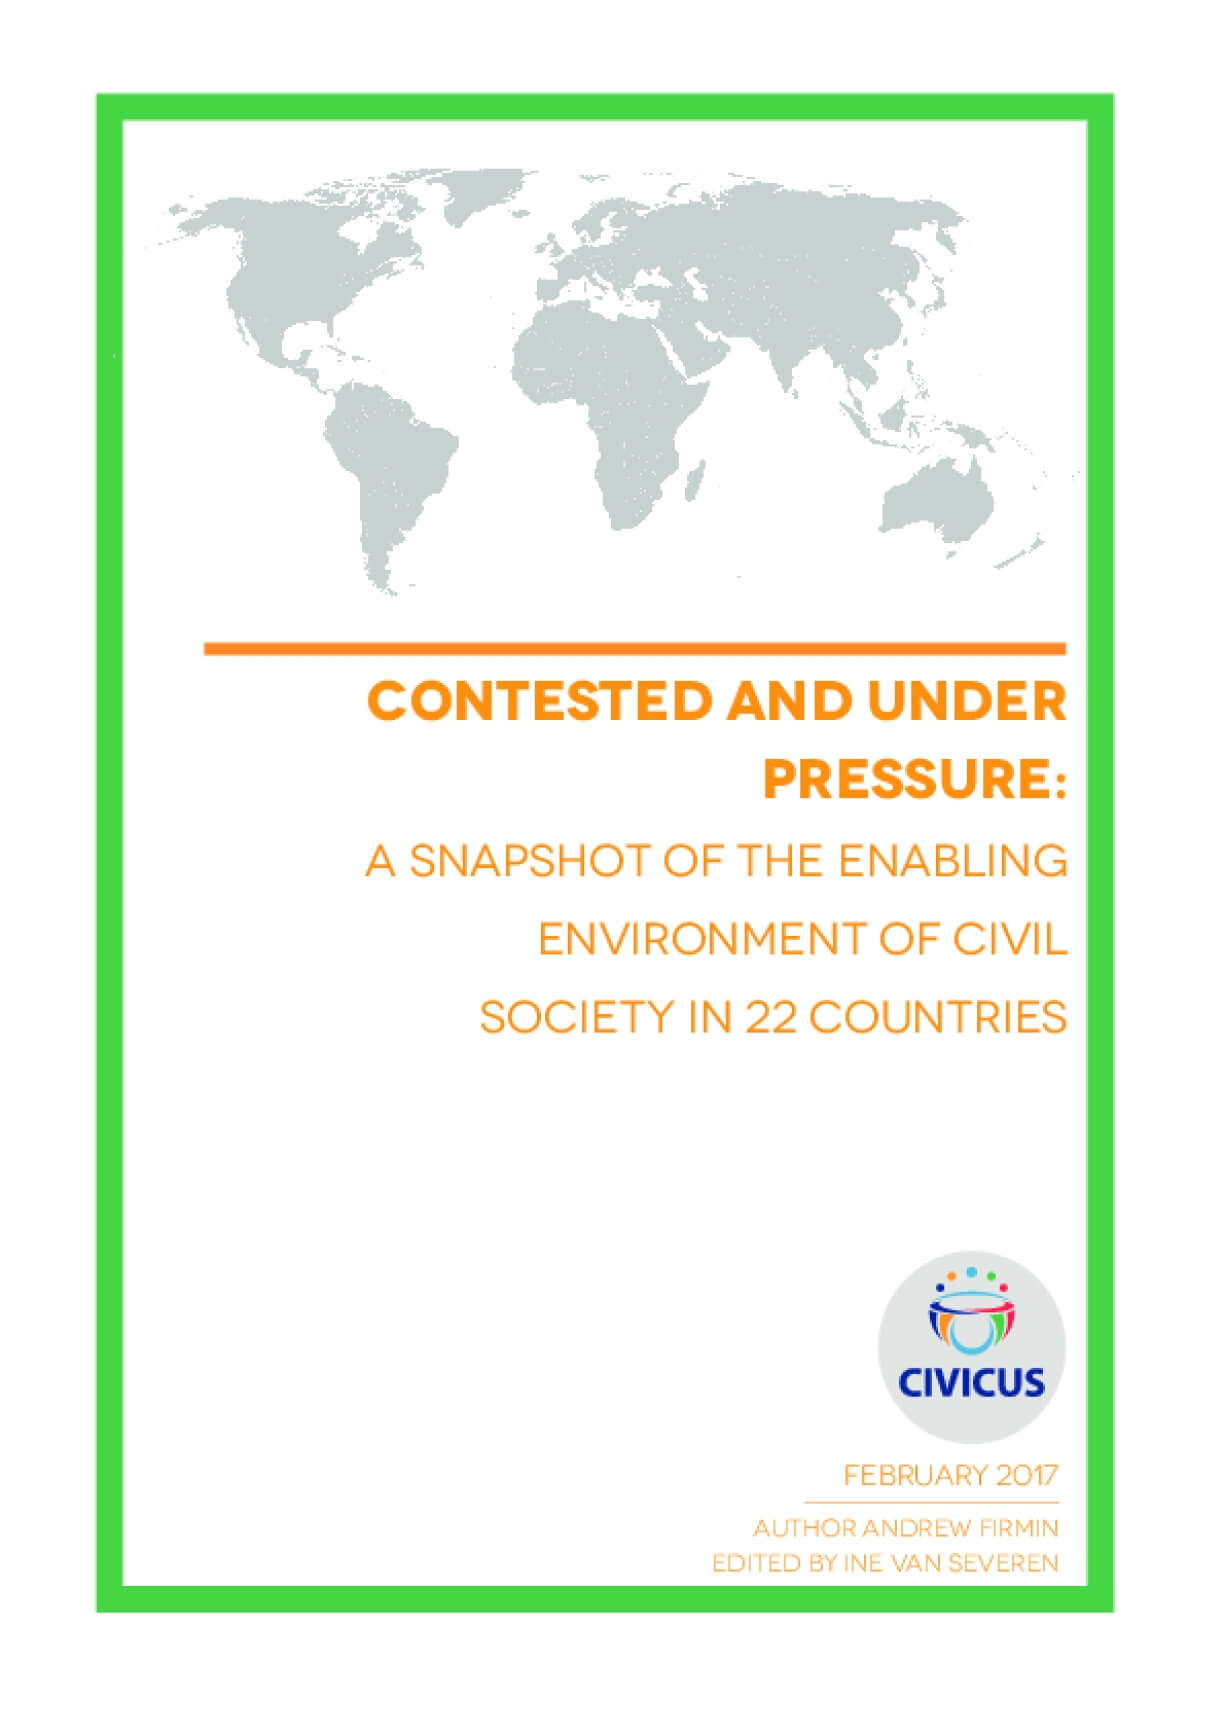 Contested and Under Pressure: A Snapshot of the Enabling Environment of Civil Society in 22 Countries